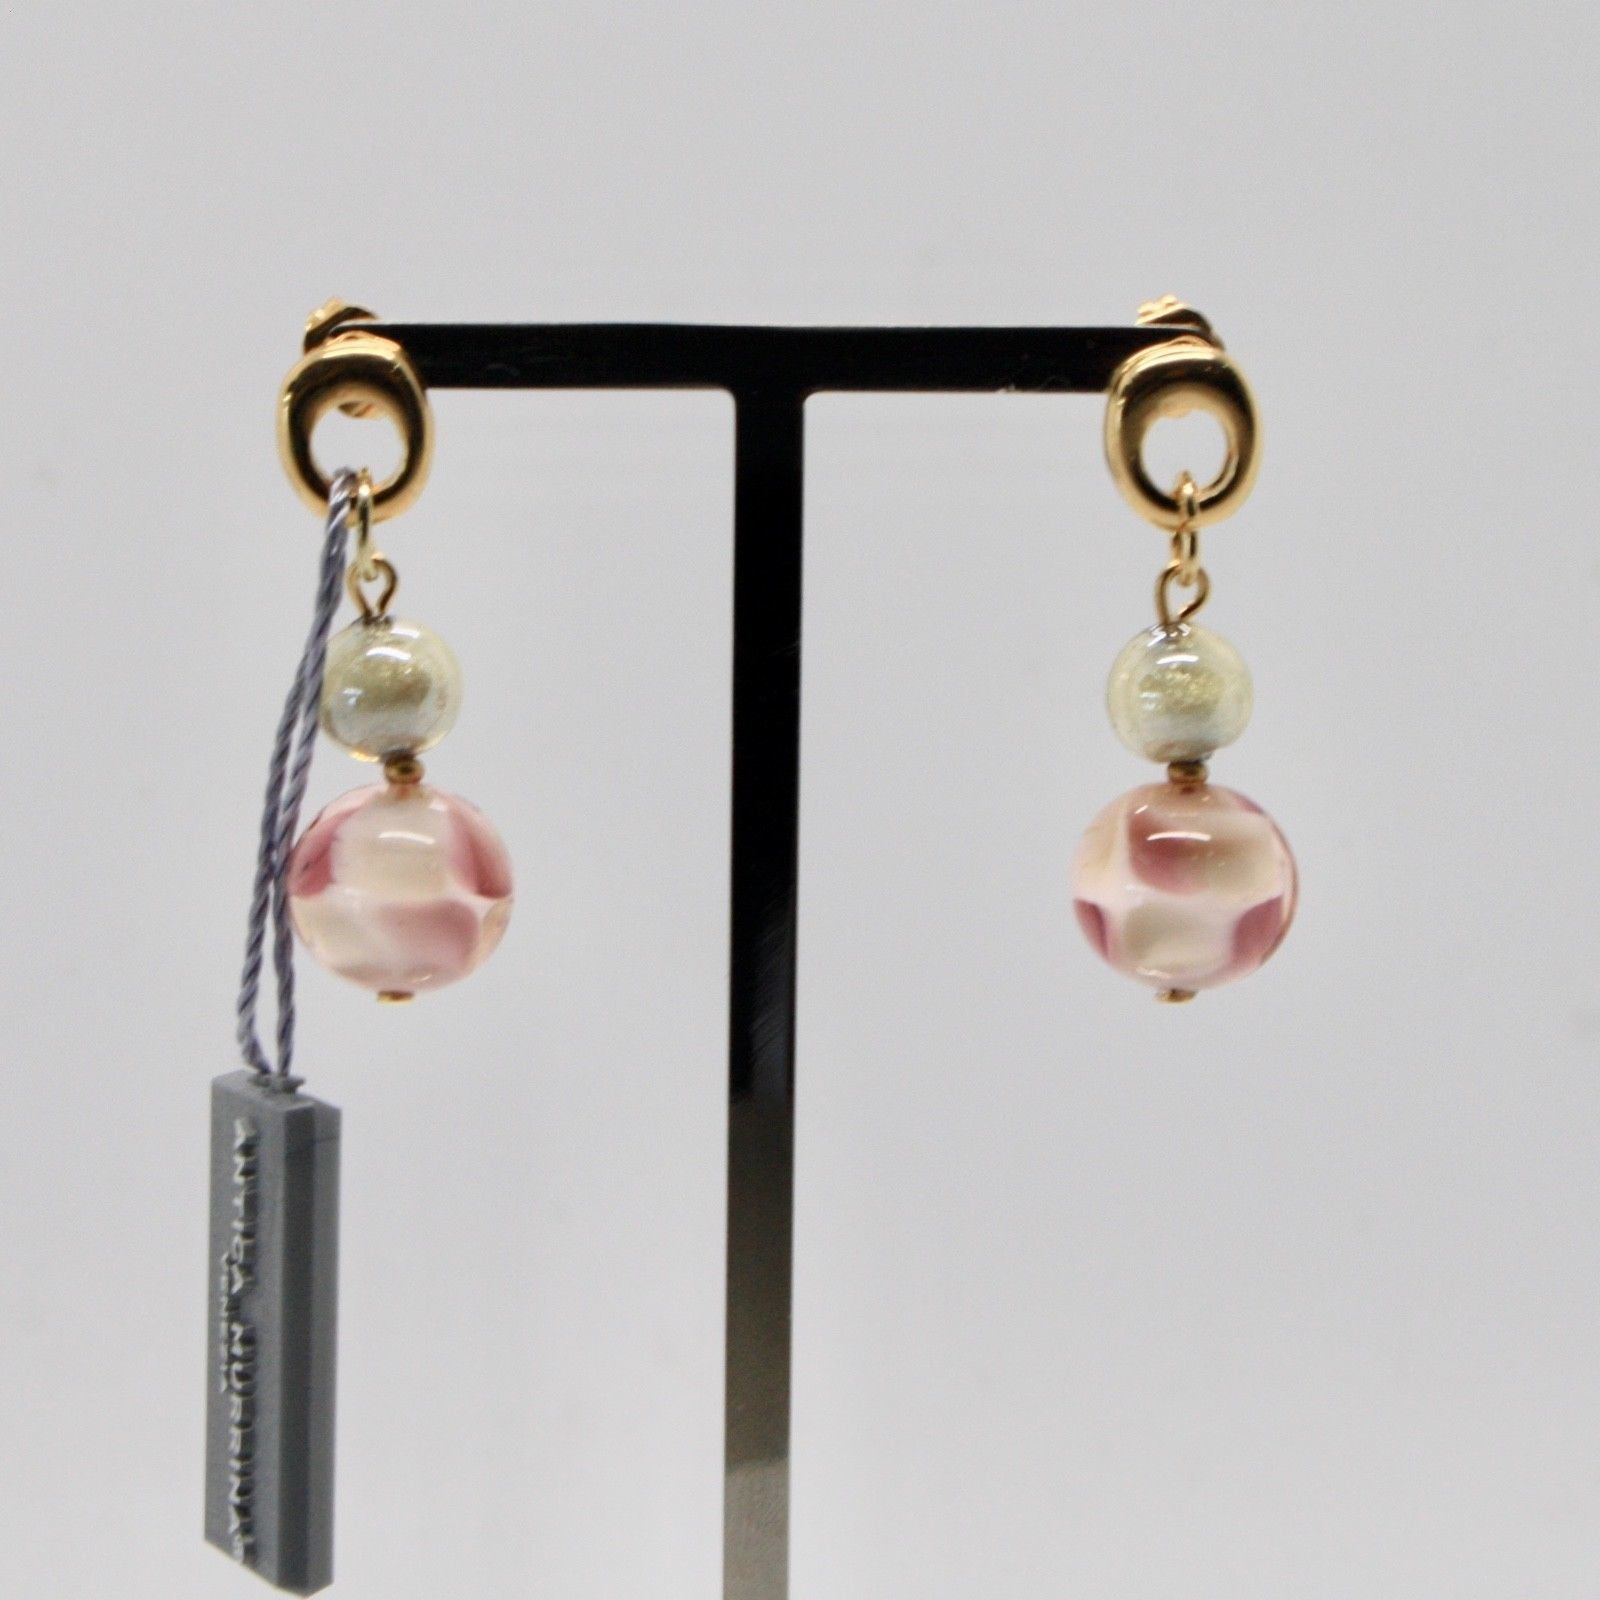 EARRINGS ANTICA MURRINA VENEZIA WITH MURANO GLASS PINK GRAY GOLD OR588A05